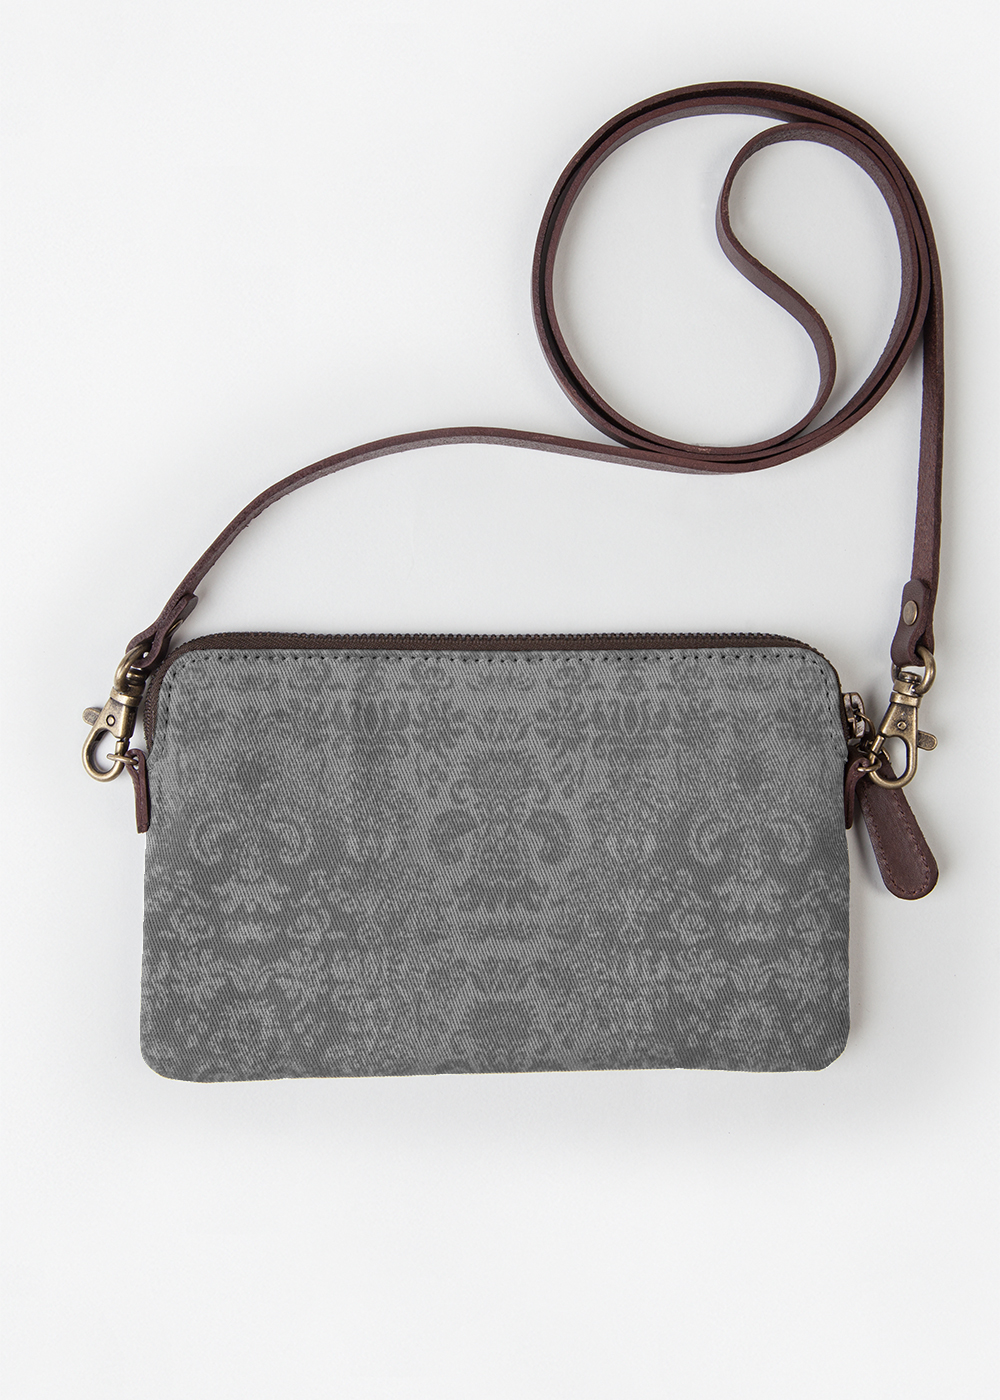 VIDA Statement Clutch - Amazing by VIDA r4gOP